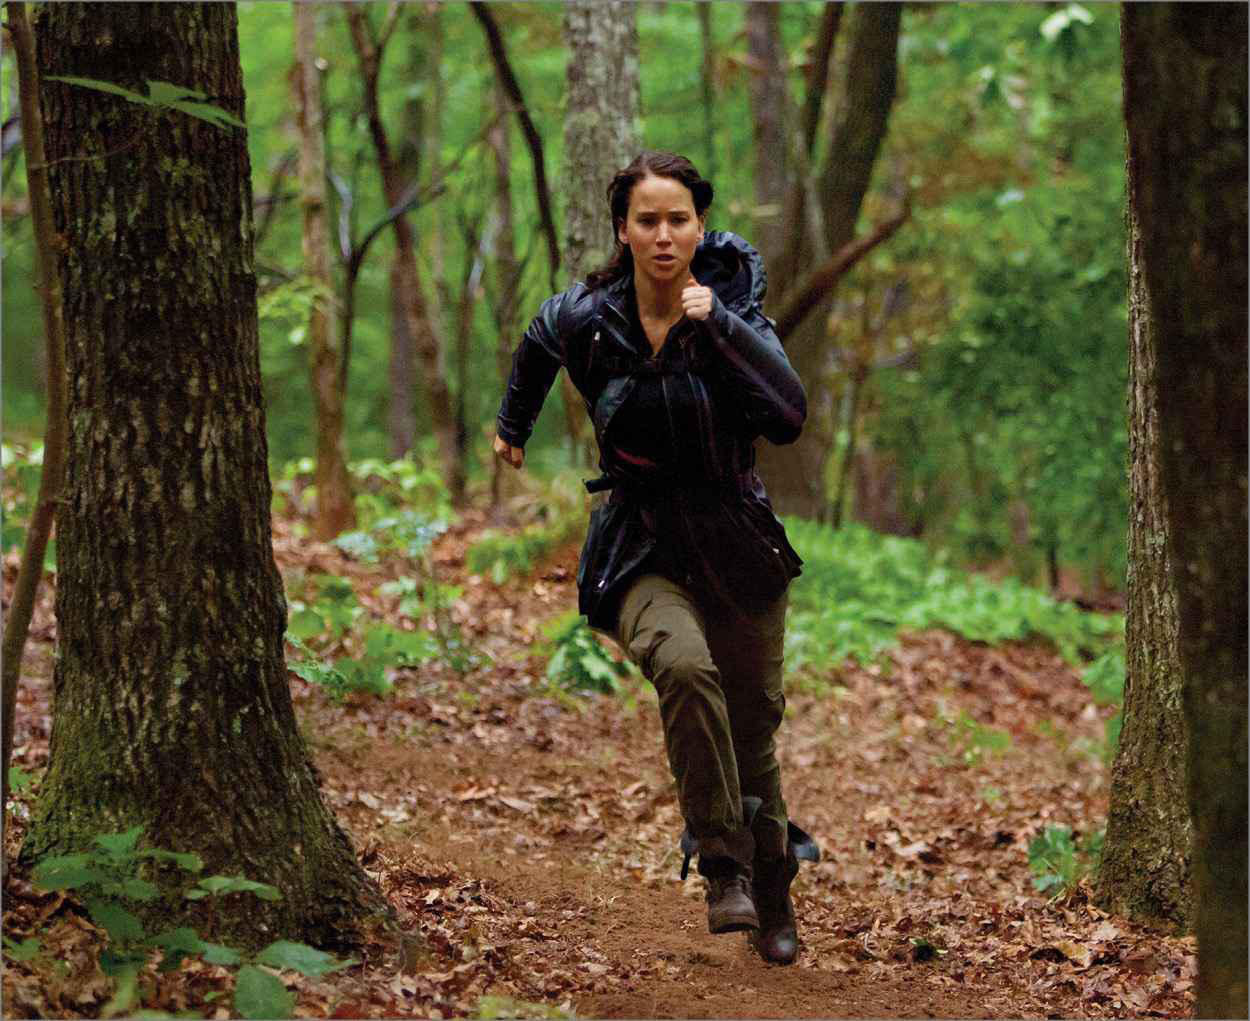 Katniss And Anastasia Mismatched Heroines In A Shared